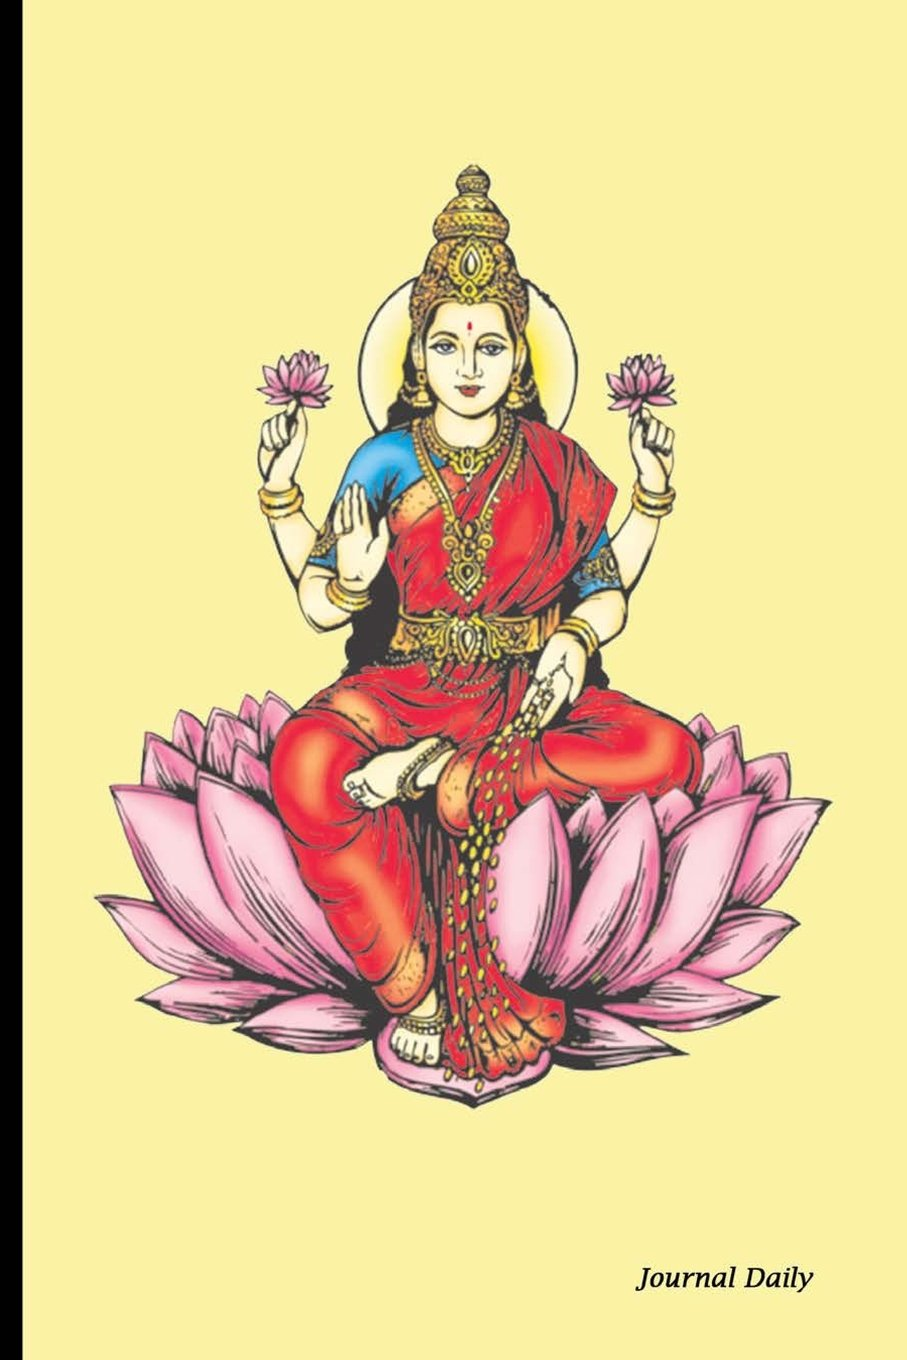 "Journal Daily: Goddess Lakshmi, Lined Blank Journal Book,150 Pages,6"" x 9"" (15.24 x 22.86 cm) Reliable Journal, Durable Softcover, Good Luck Gifts, Indian Artwork, pdf epub"